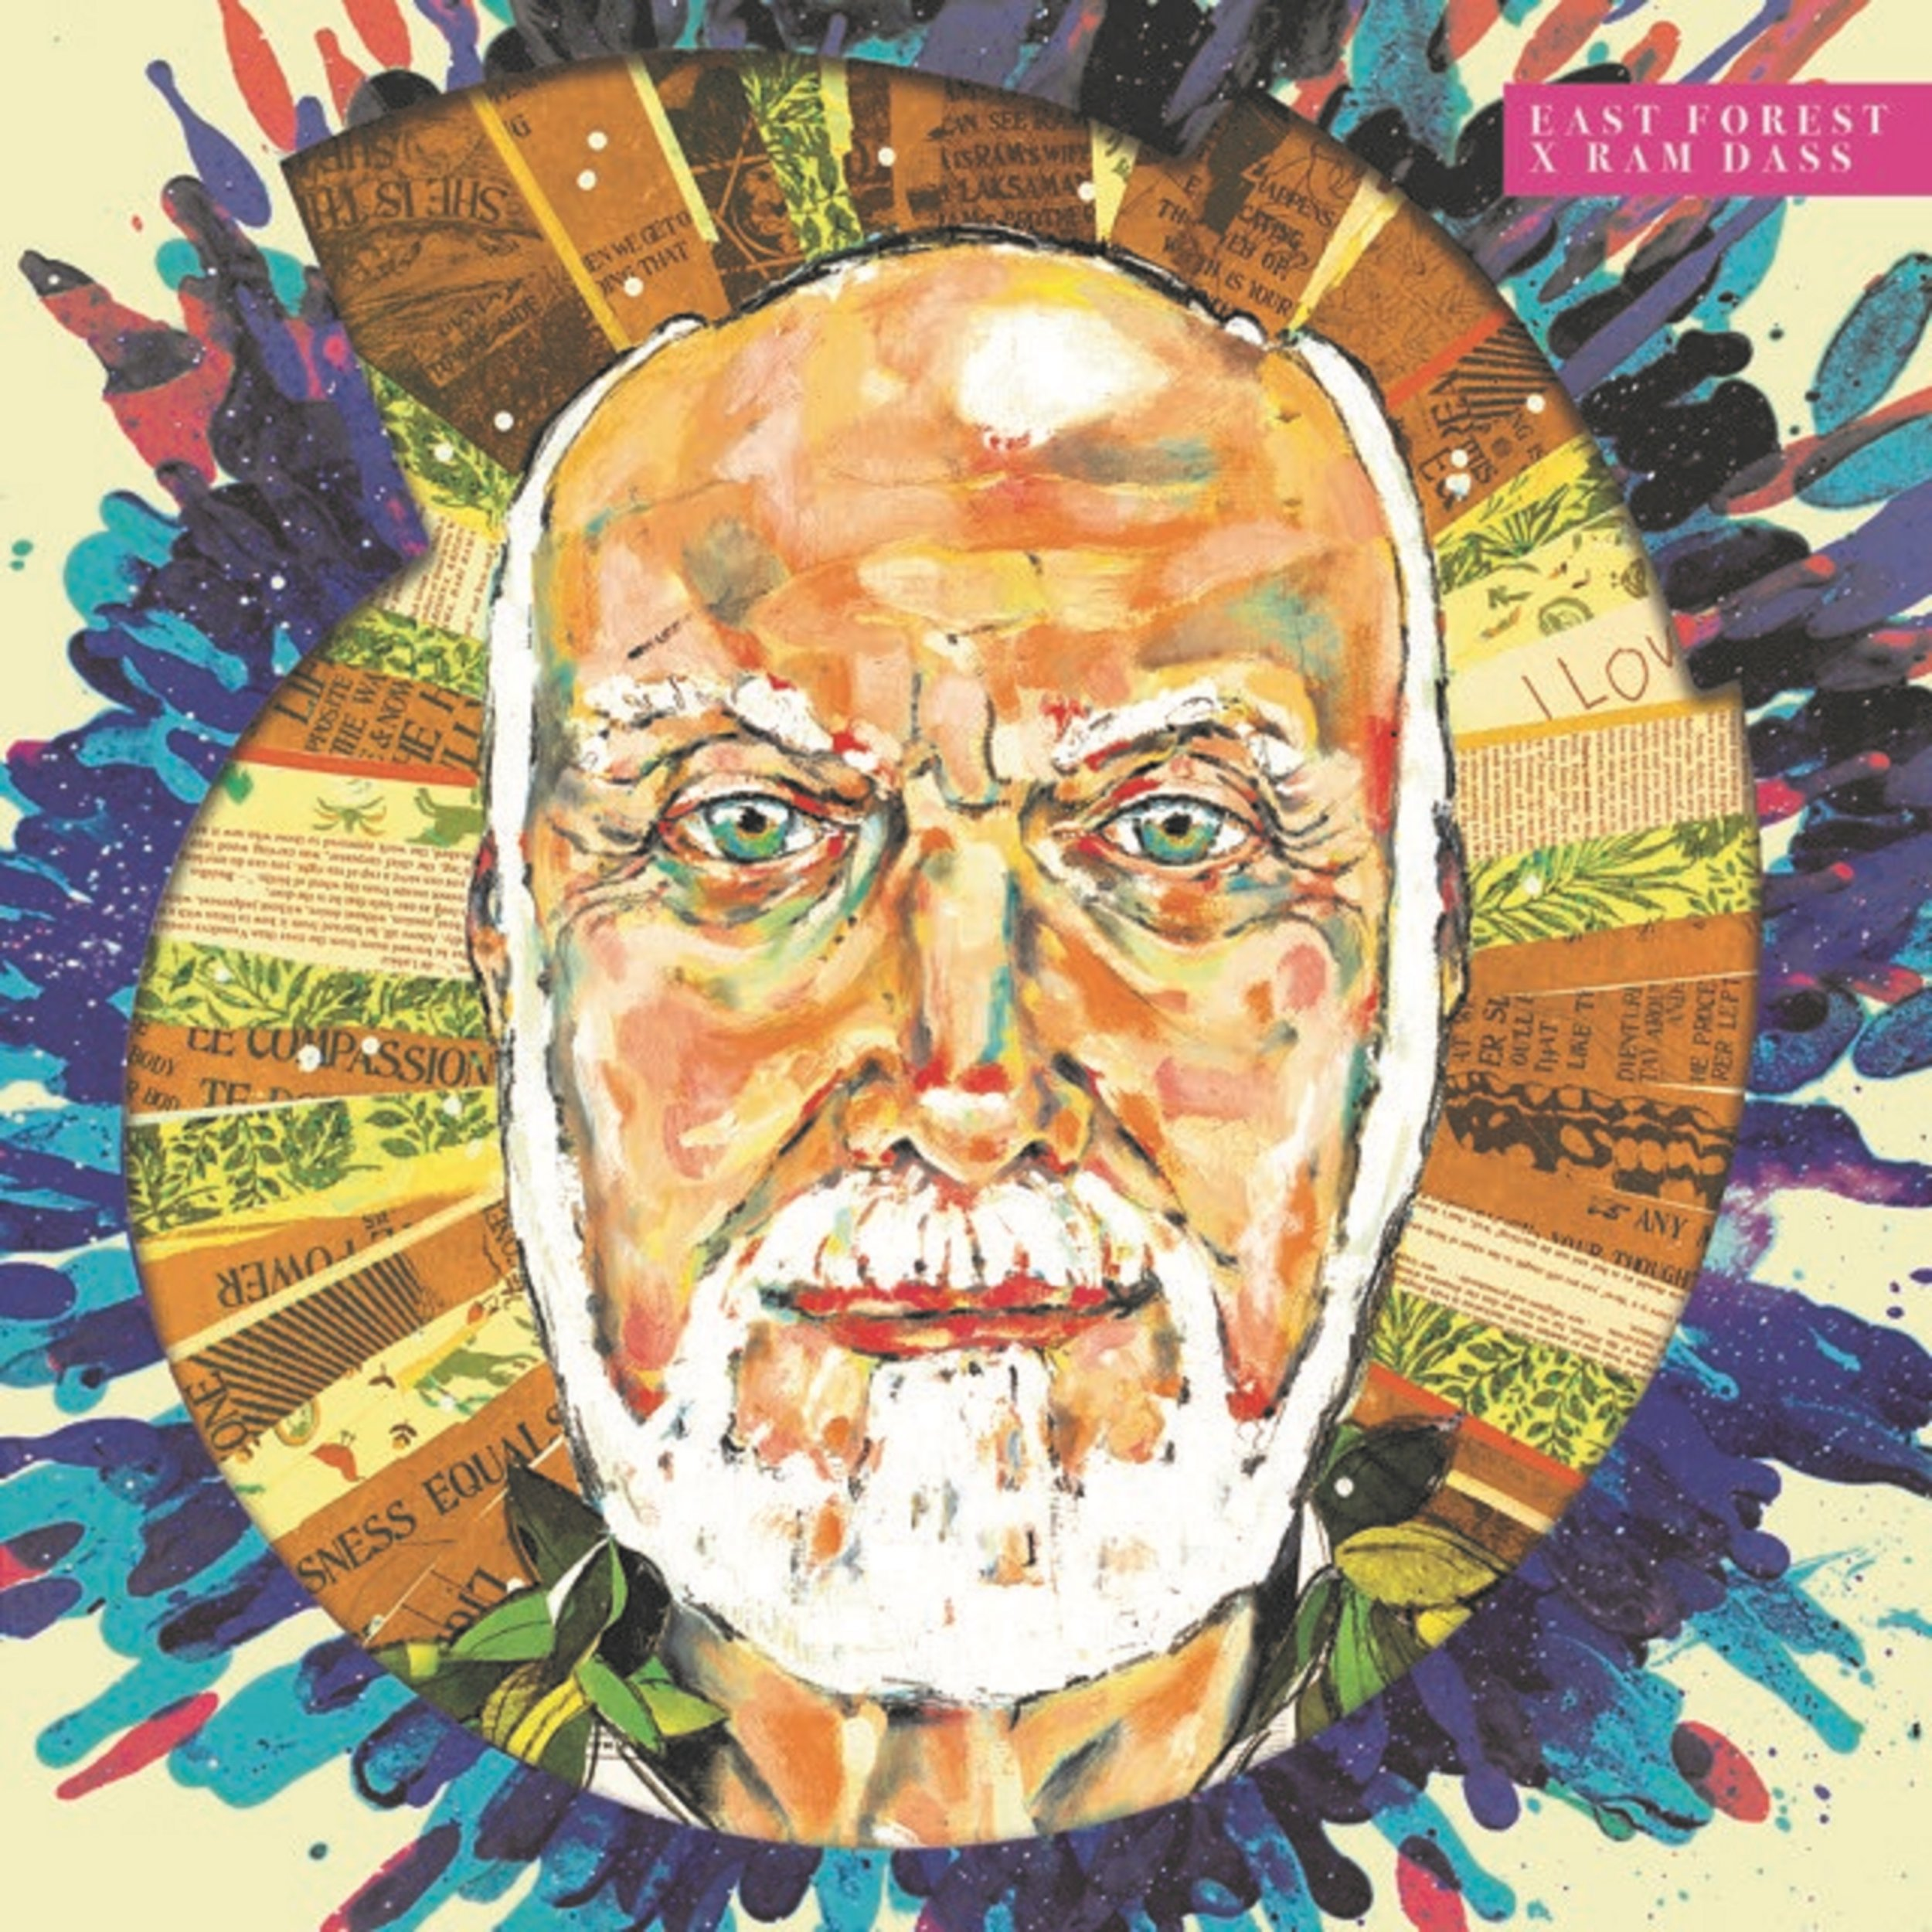 east forest and ram dass.jpg